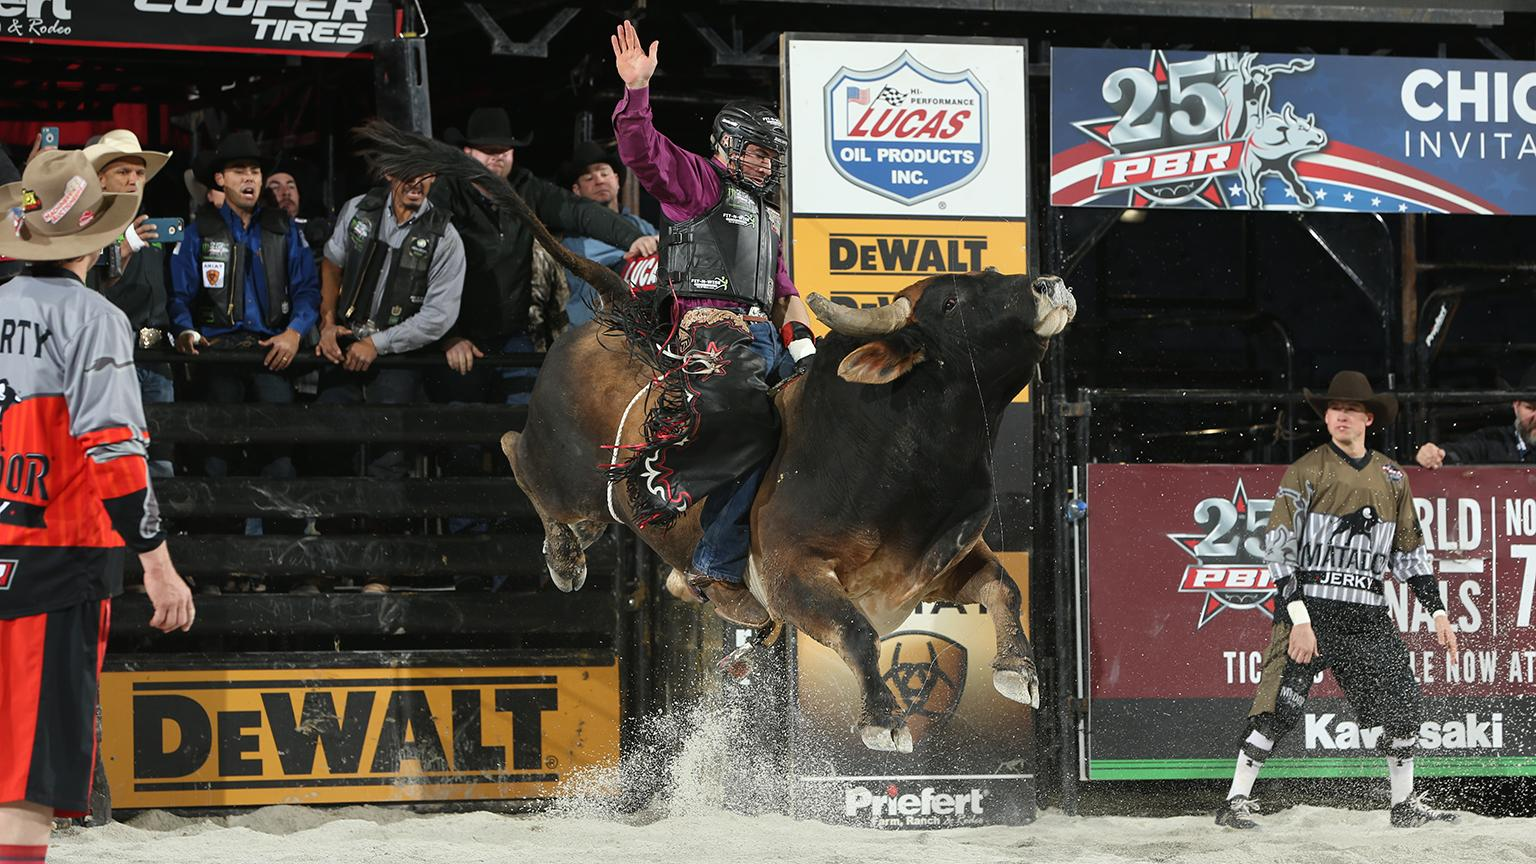 Ramon de Lima rides Blake Sharp/Sharp Farm & Cattle's Panama Outlaw during the second round of the Chicago Unleash the Beast PBR. (Photo by Andy Watson)